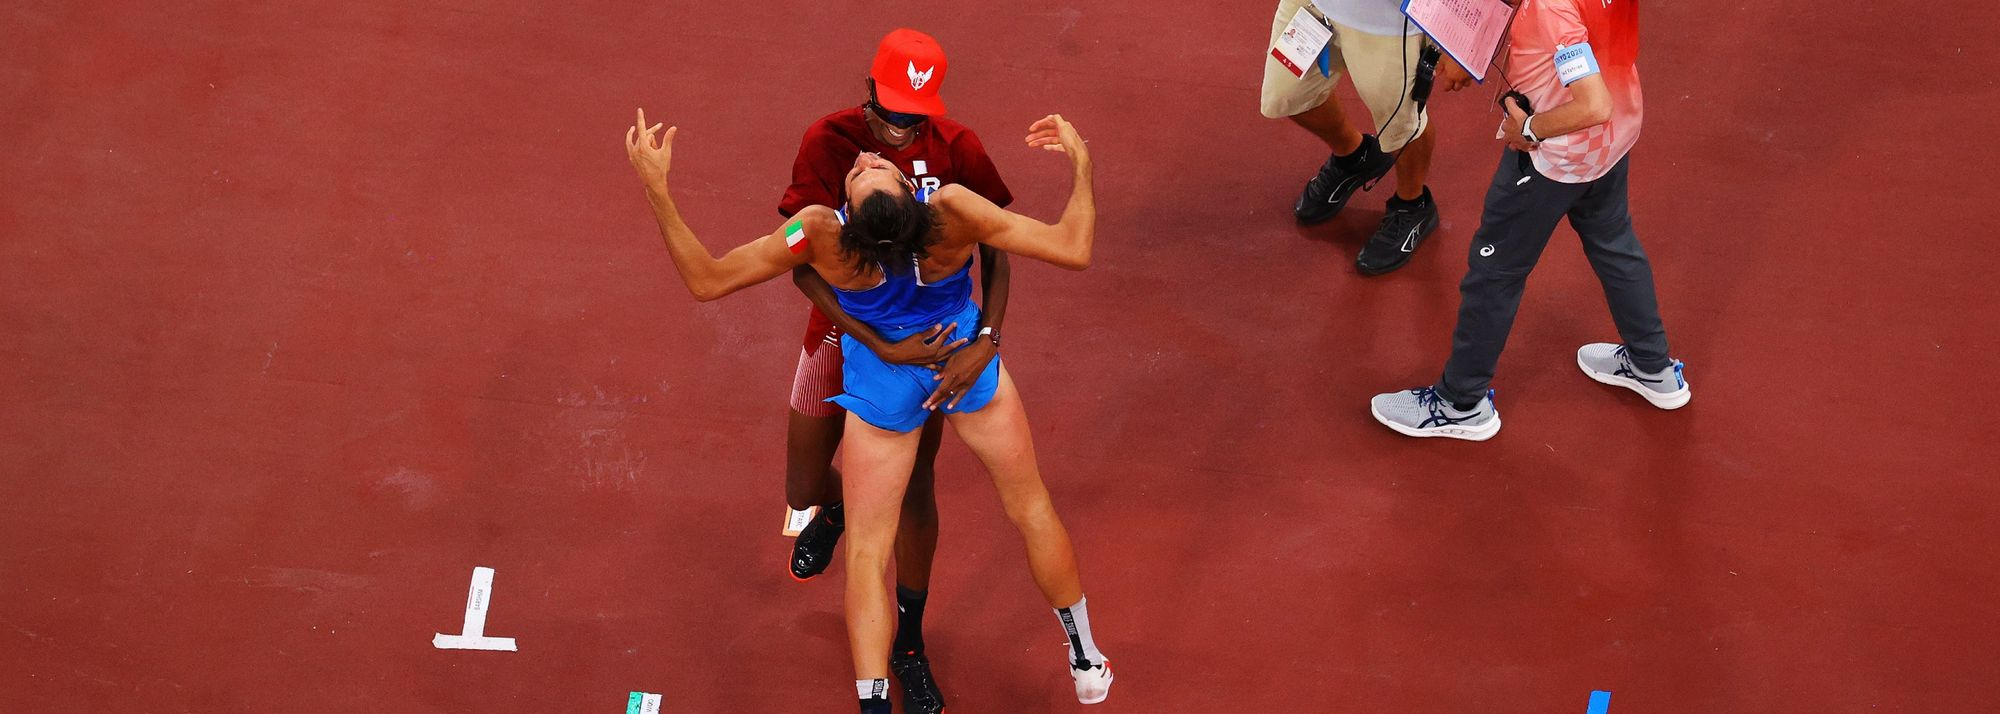 Athletics is rarely more poetic than it was in Tokyo on Sunday night, when Mutaz Barshim and Gianmarco Tamberi agreed to share the Olympic high jump gold medal.